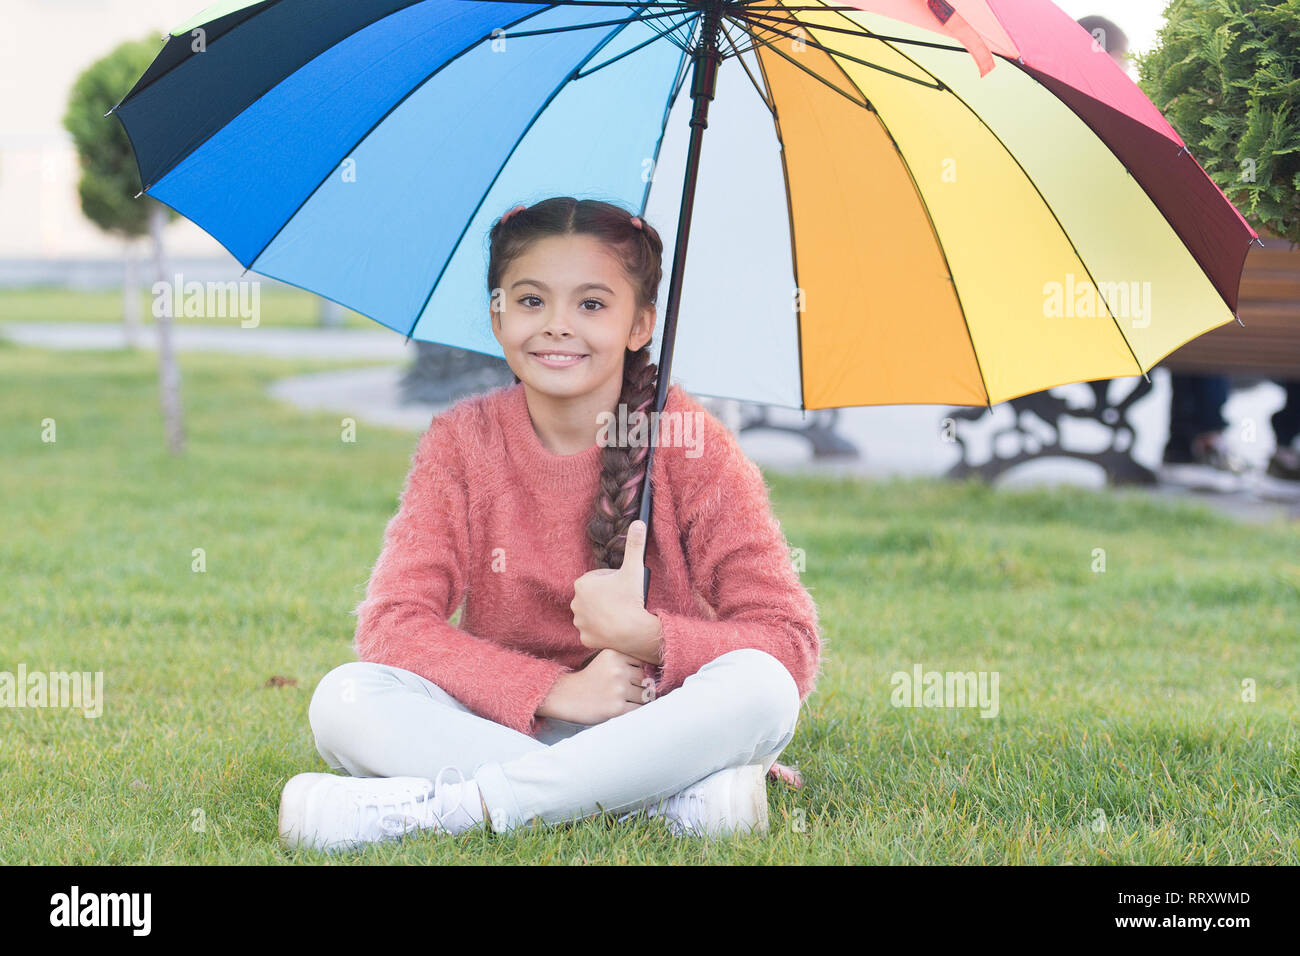 Everything better with my umbrella. Colorful accessory for cheerful mood. Girl child long hair with umbrella. Colorful accessory positive influence. Bright umbrella. Stay positive and optimistic. - Stock Image